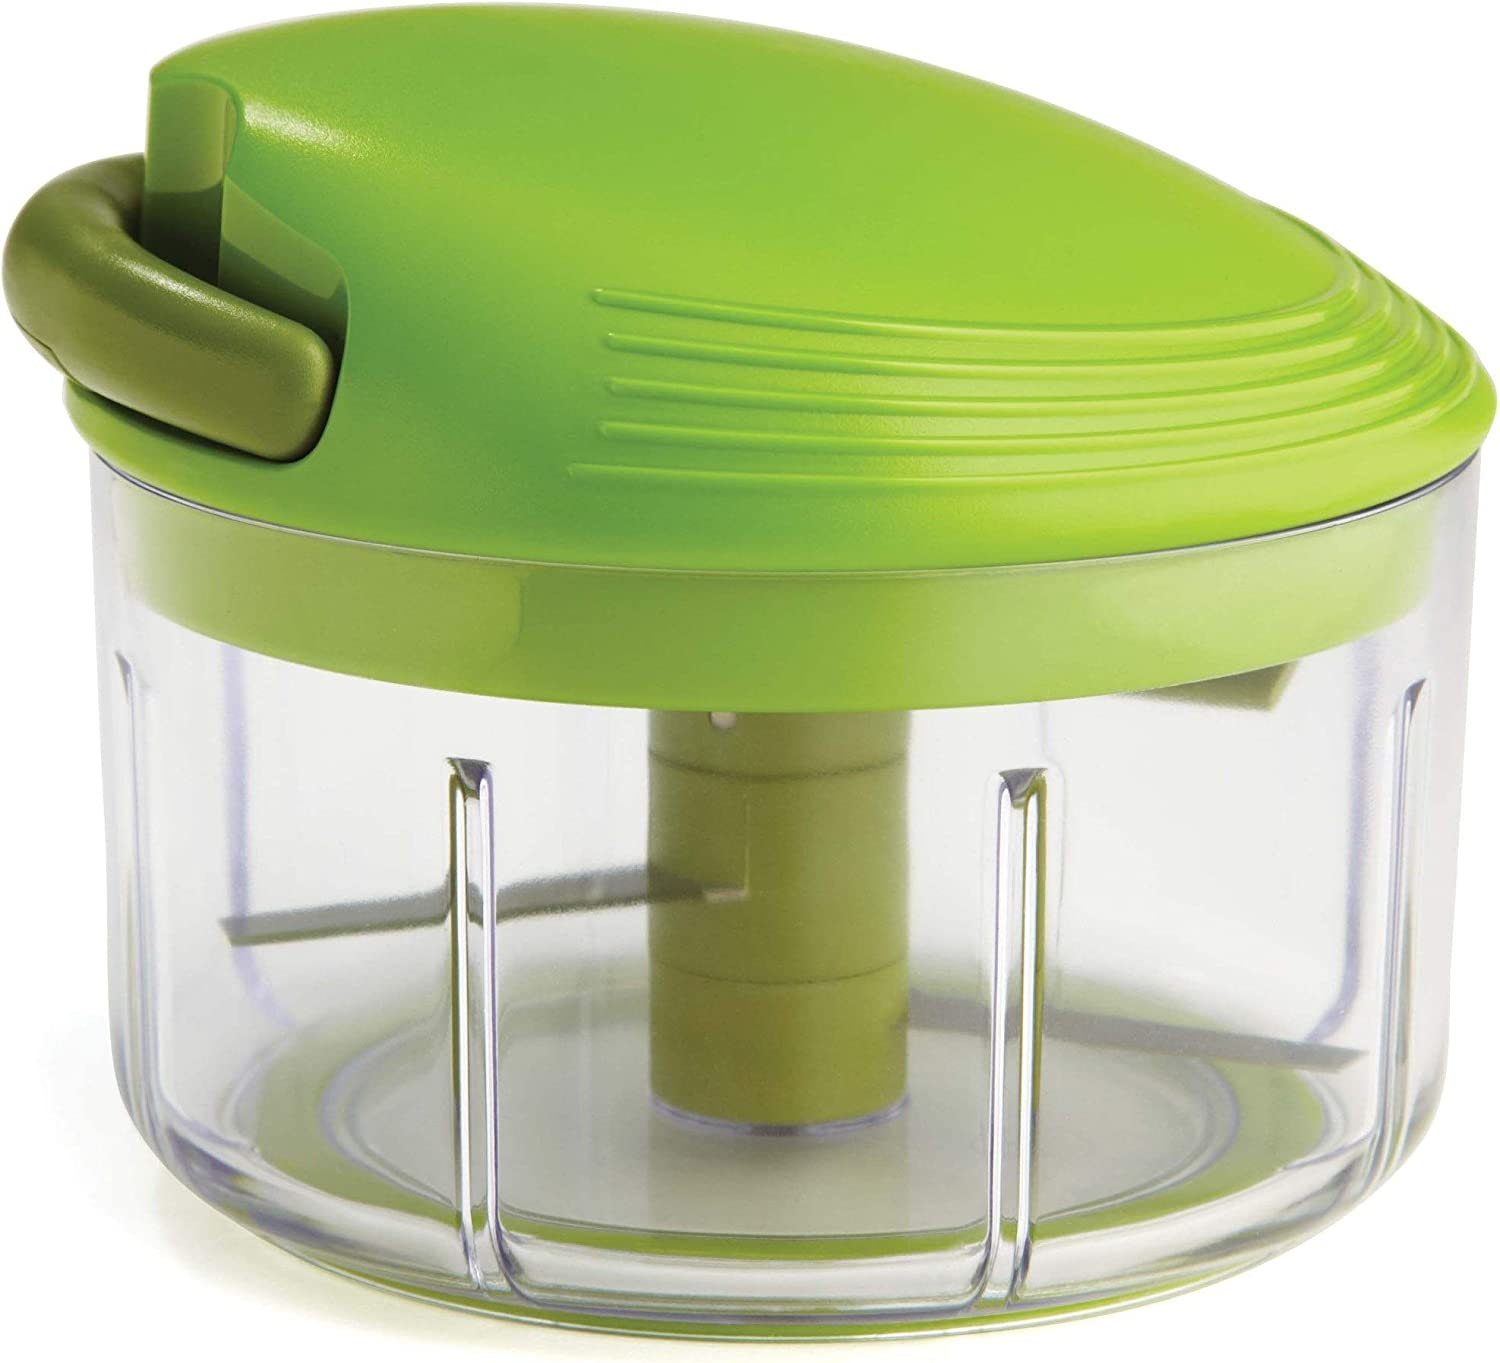 Kuhn Rikon Pull Chop Chopper/Manual Food Processor with Cord Mechanism, Green, 2-Cup: Choppers: Kitchen & Dining